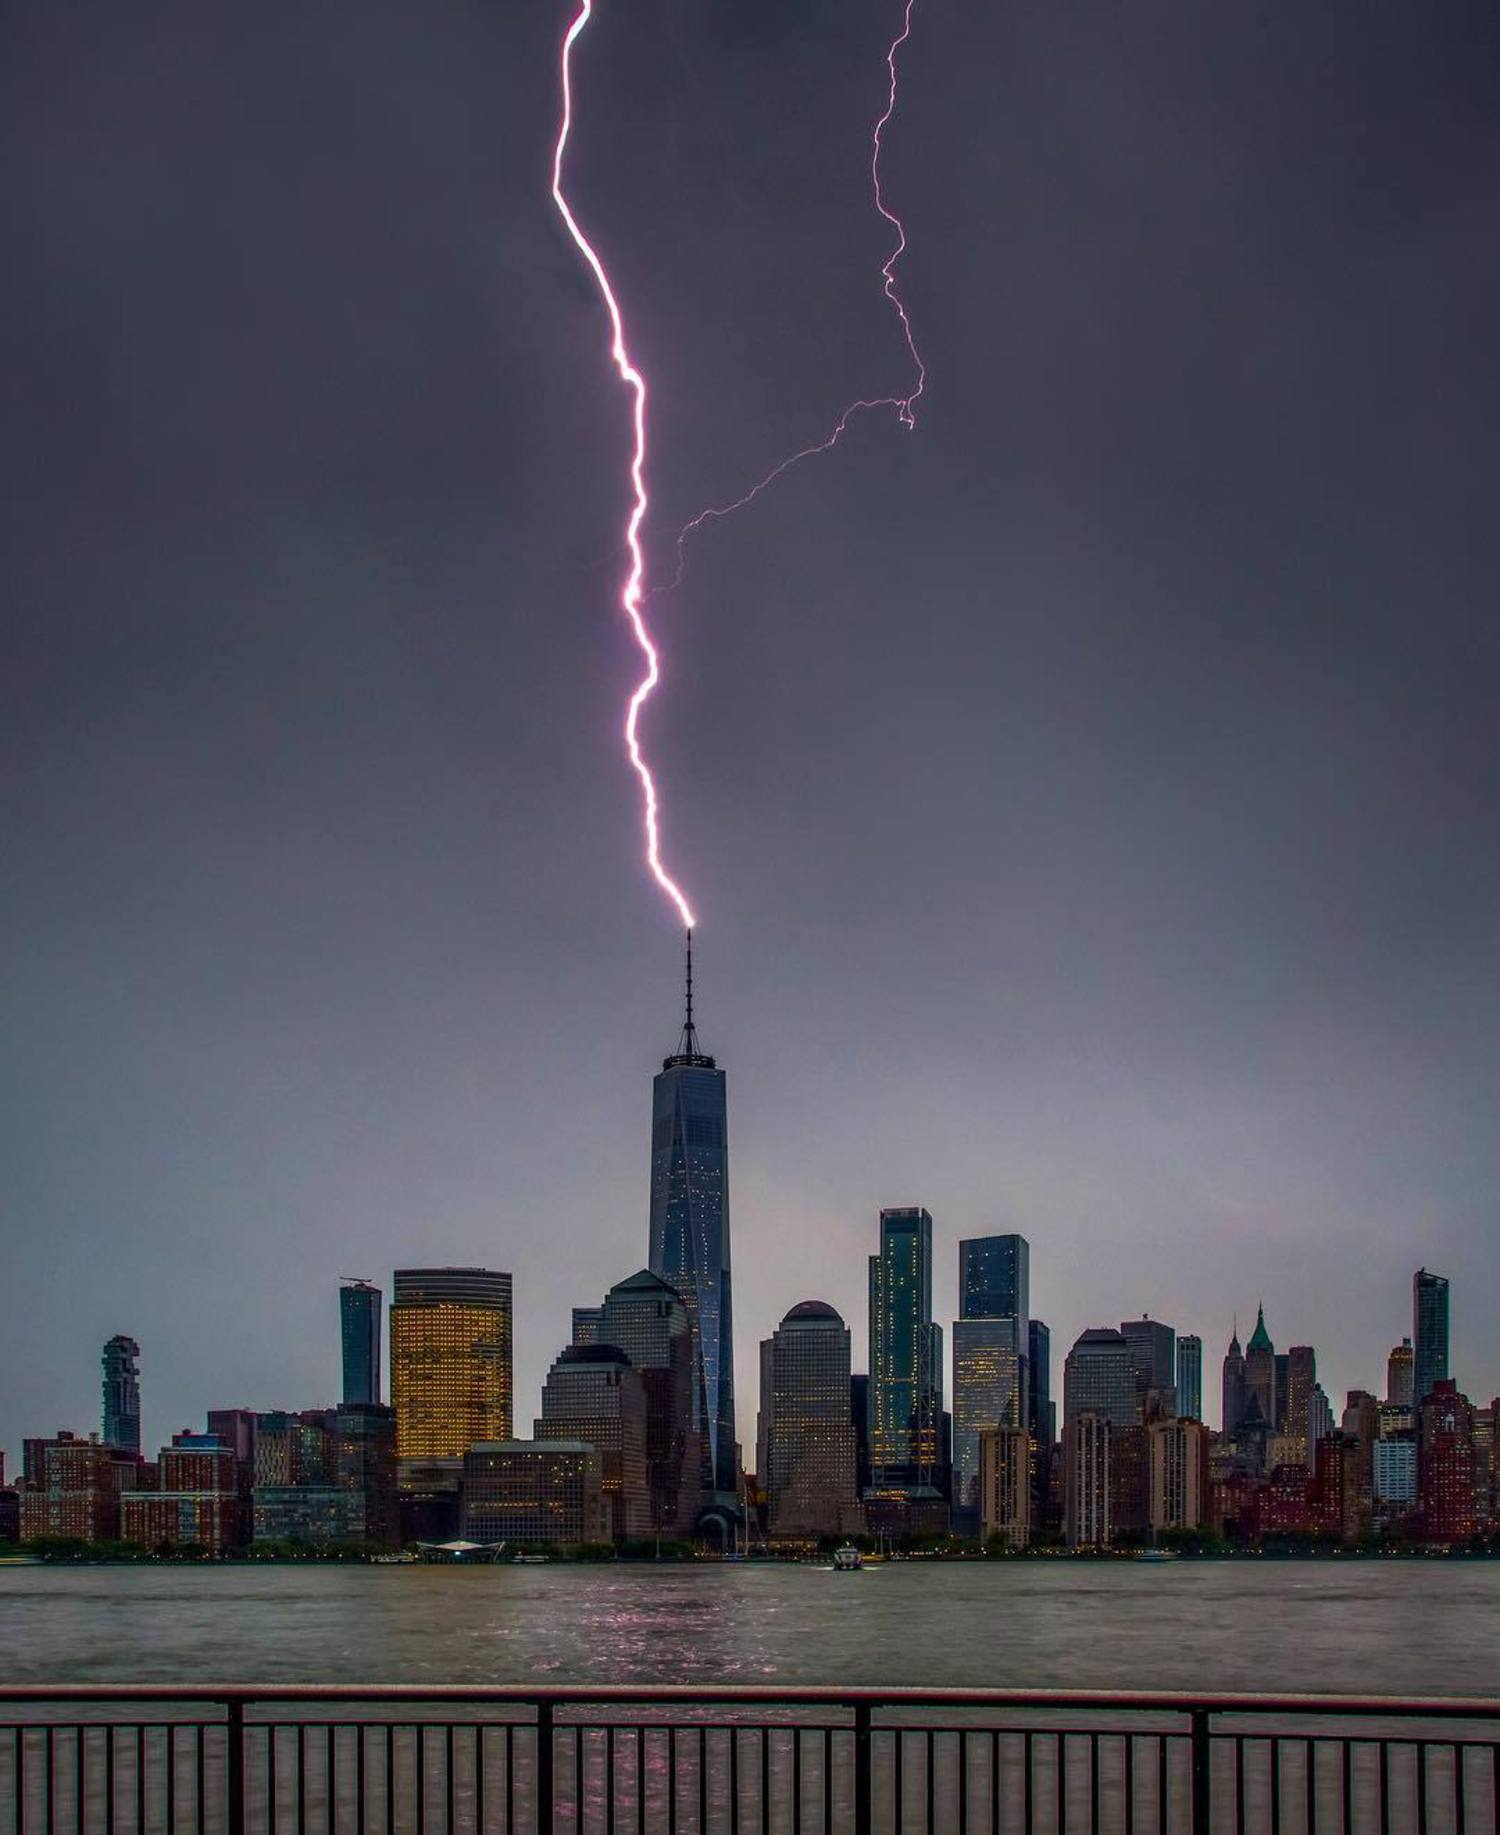 Lightning strikes One World Trade Center, New York, New York